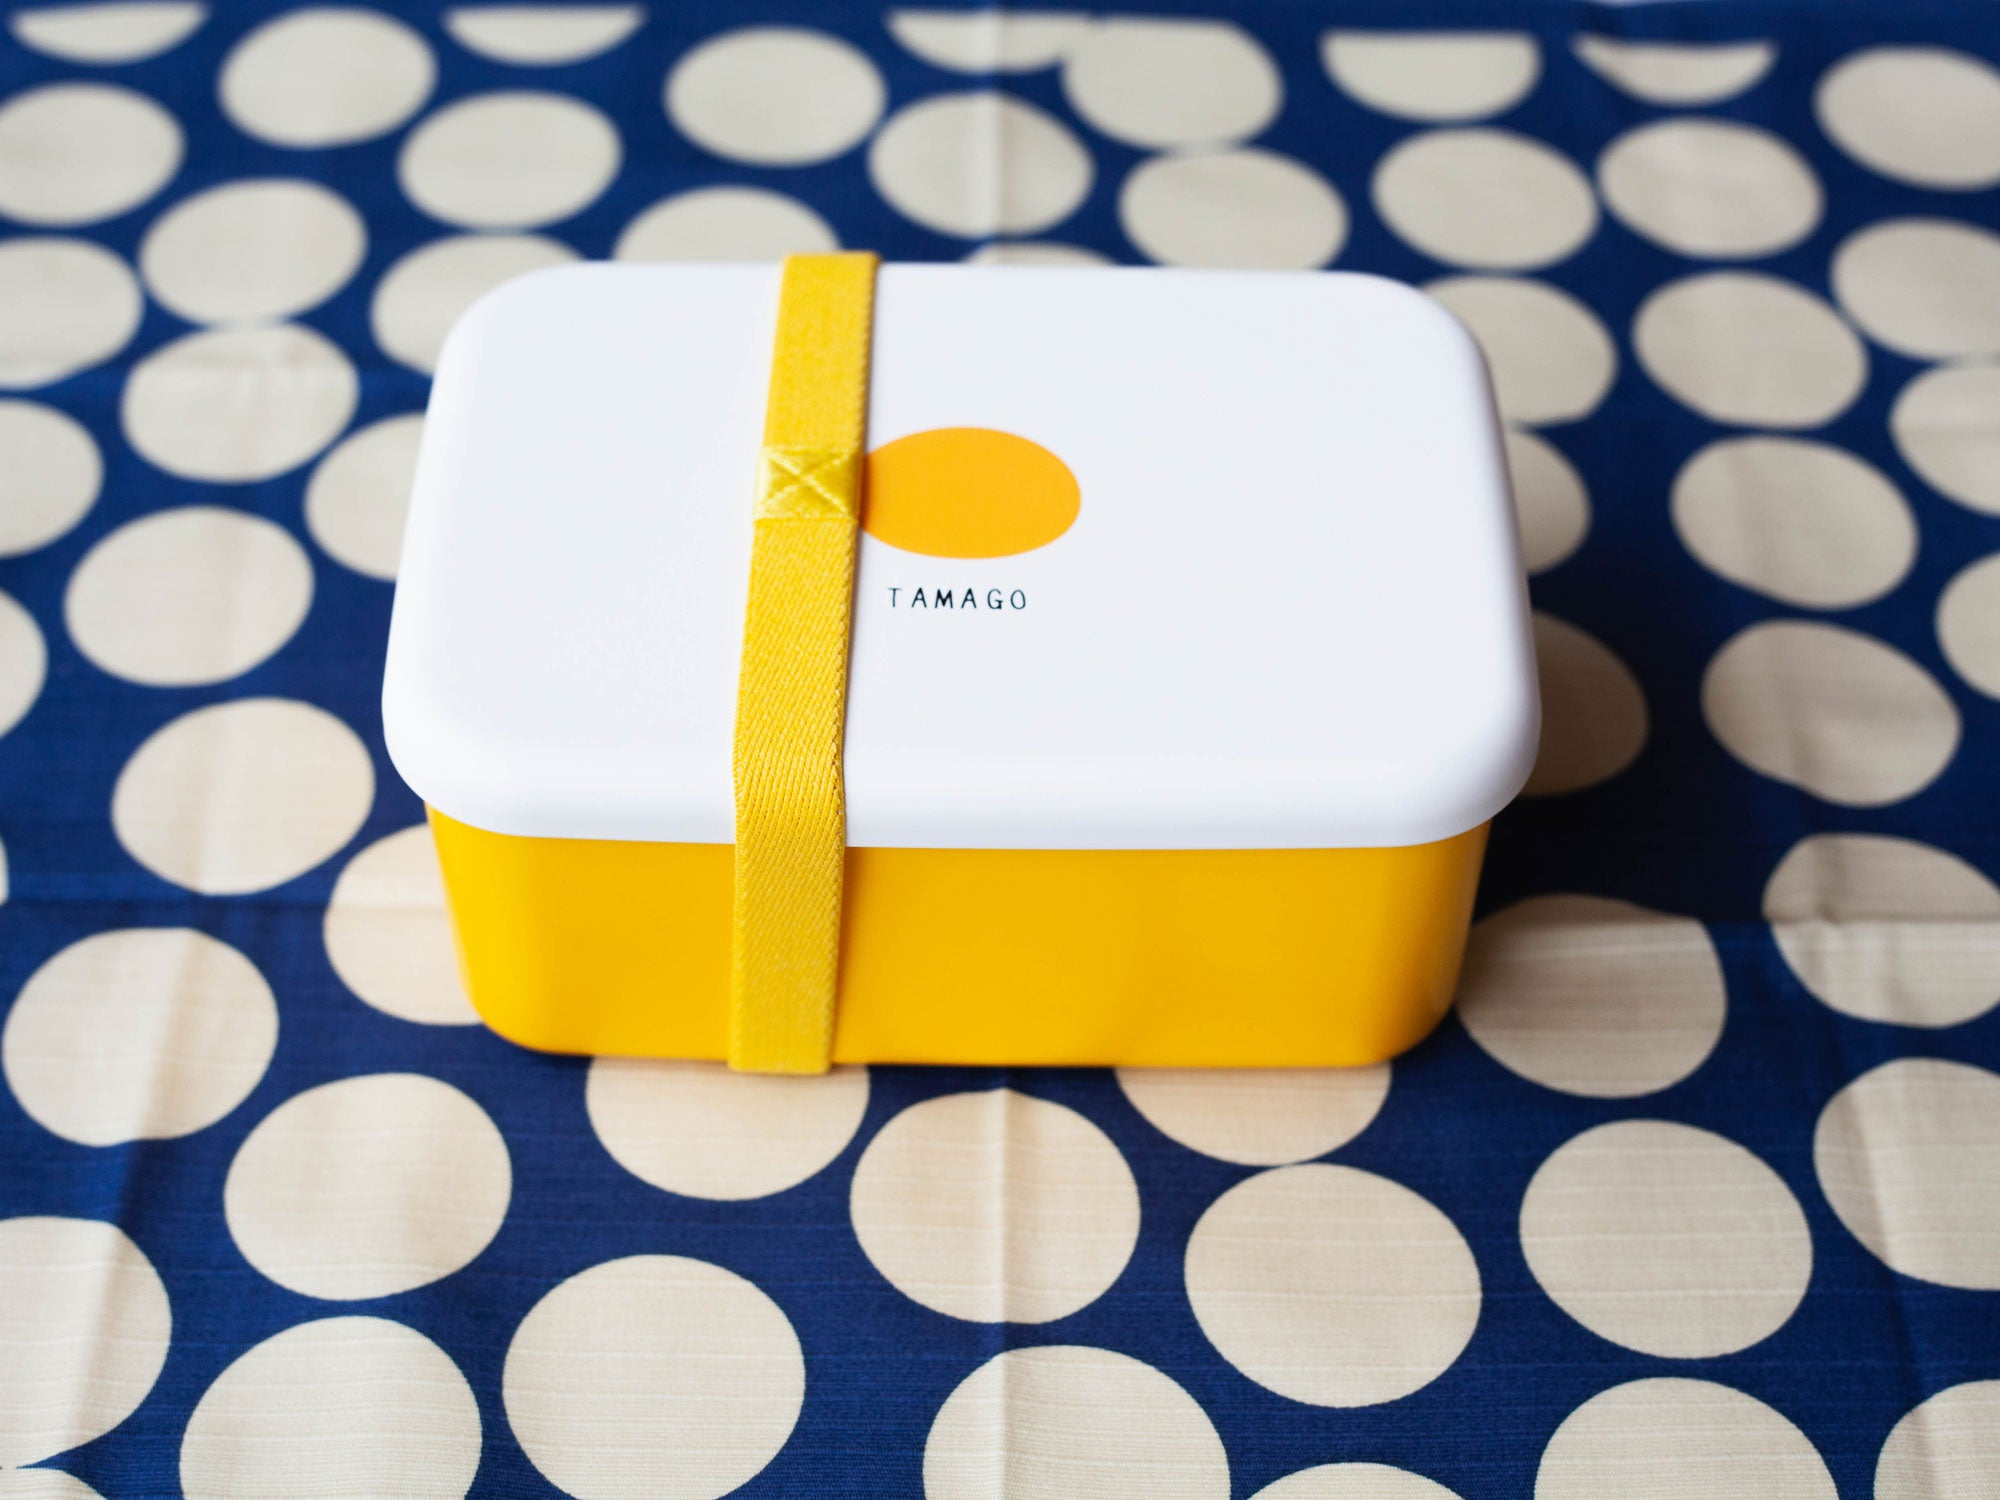 Toppings Rectangle Bento Box | Tamago by Hakoya - Bento&co Japanese Bento Lunch Boxes and Kitchenware Specialists